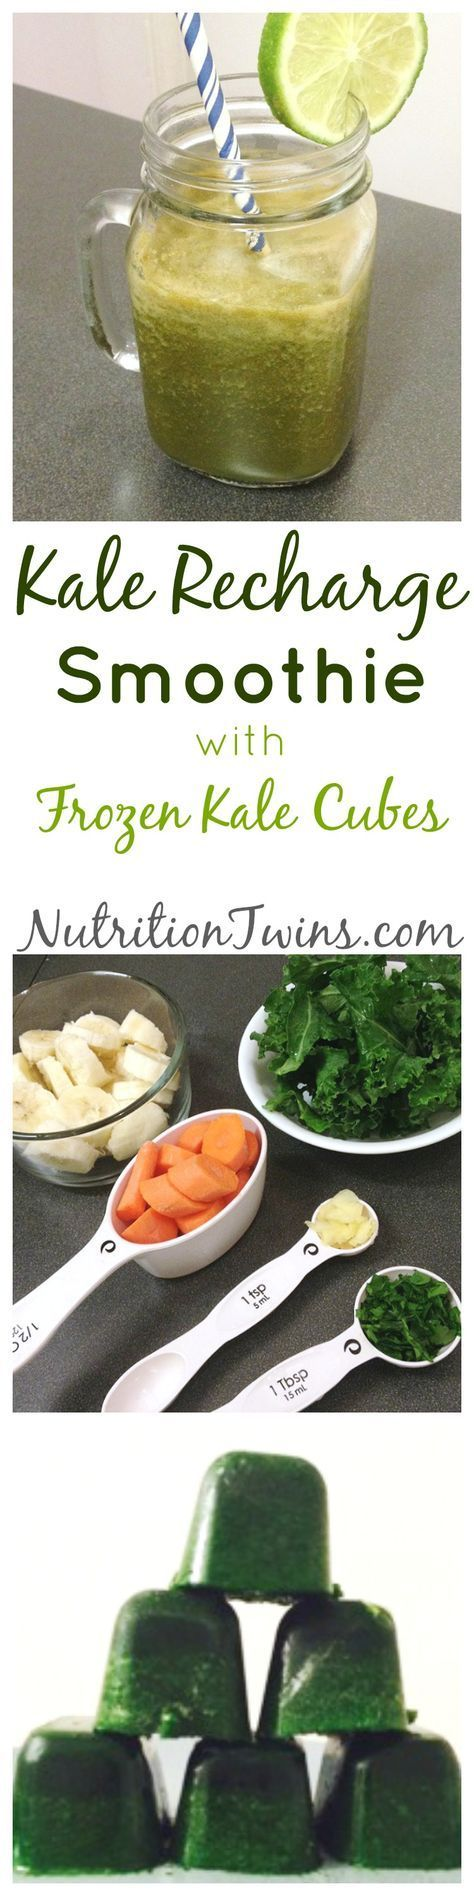 Kale Recharge Smoothie | Flush bloat & flood body with Anti- oxidants | Kale and Spinach Cubes | Super Easy to Make | Simple way to boost nutrients-- toss in soup, smoothies, etc! | For MORE RECIPES, fitness & nutrition tips please SIGN UP for our FREE NEWSLETTER www.NutritionTwins.com